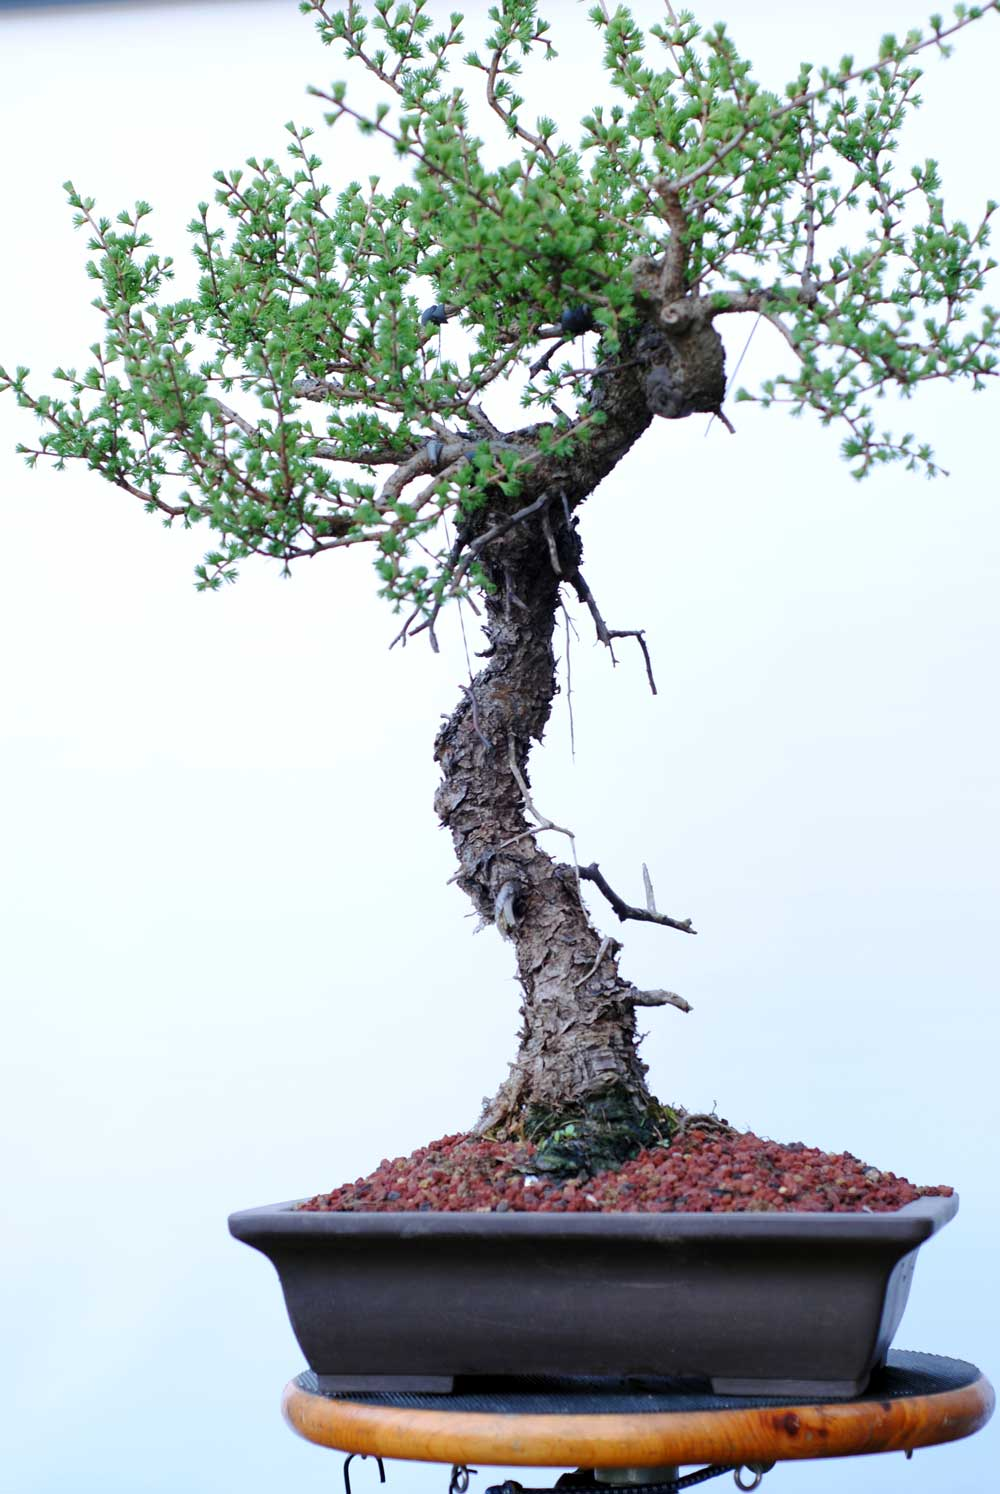 Lakeshore Bonsai In Toronto Canada Wiring Lesson This Tree Was Collected 2012 And Had Major Root Operations 2014 Again